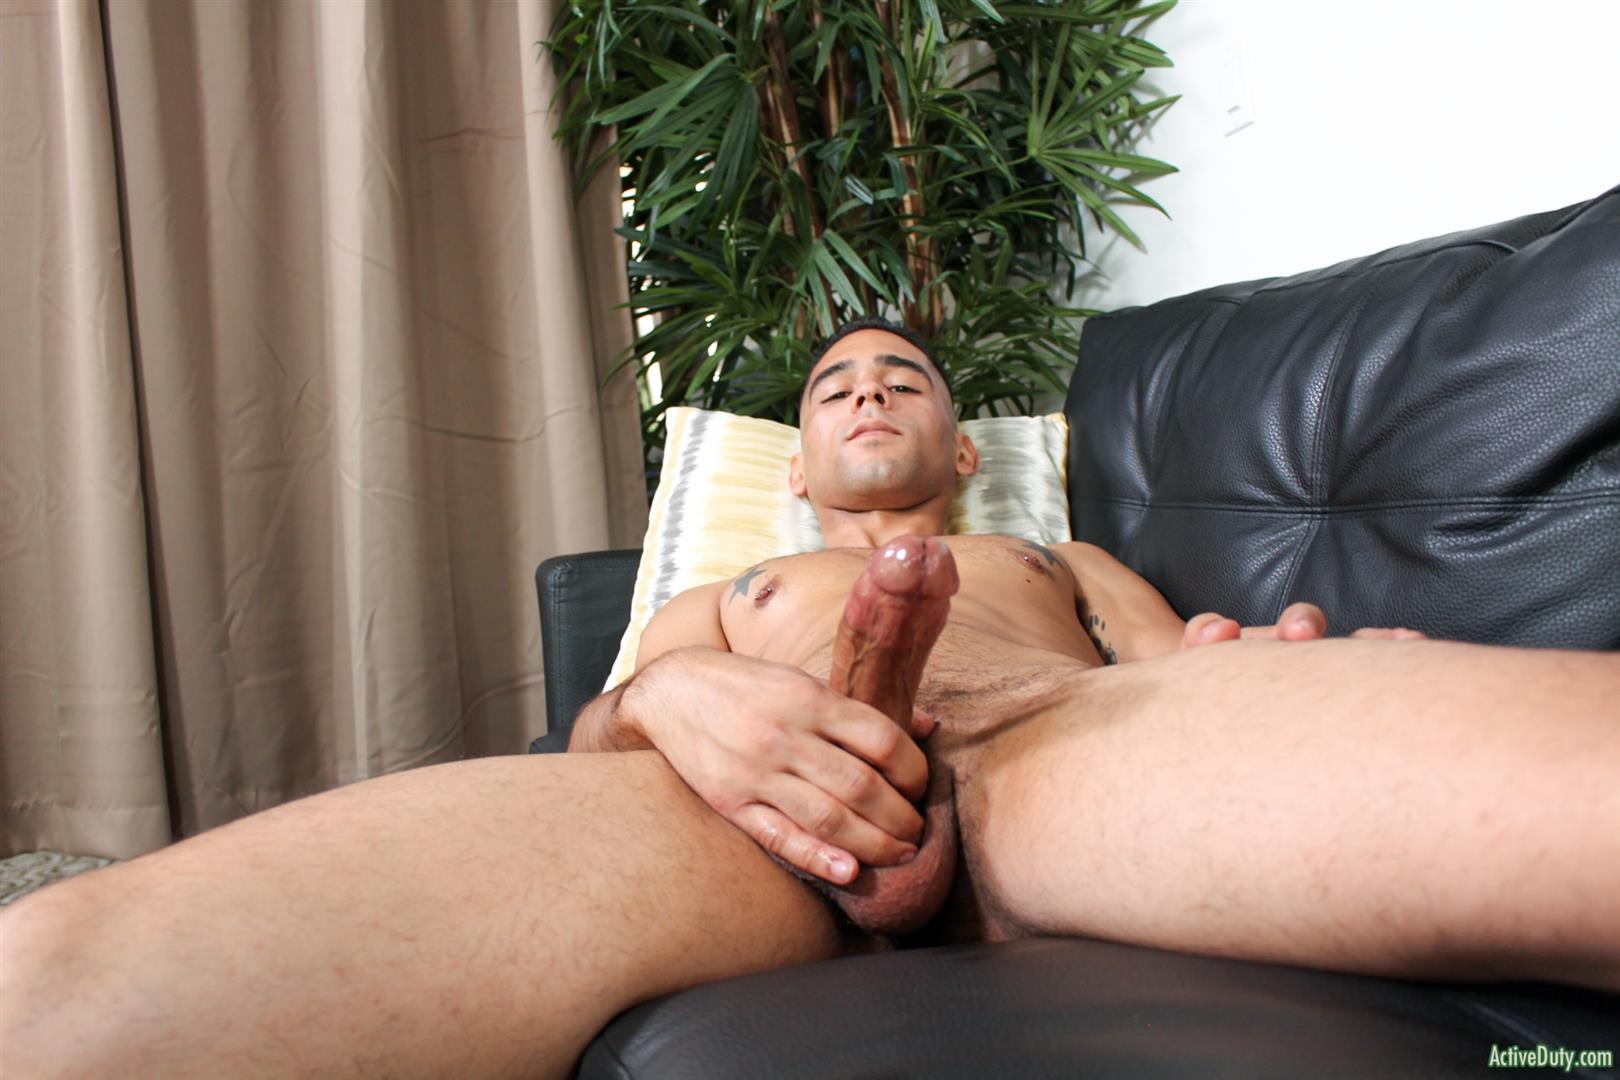 Active-Duty-Rossi-Thick-Dick-Naked-Soldier-Jerking-Off-Video-08 Thick Dick Army Soldier Jerks Out A Creamy Load Of Cum